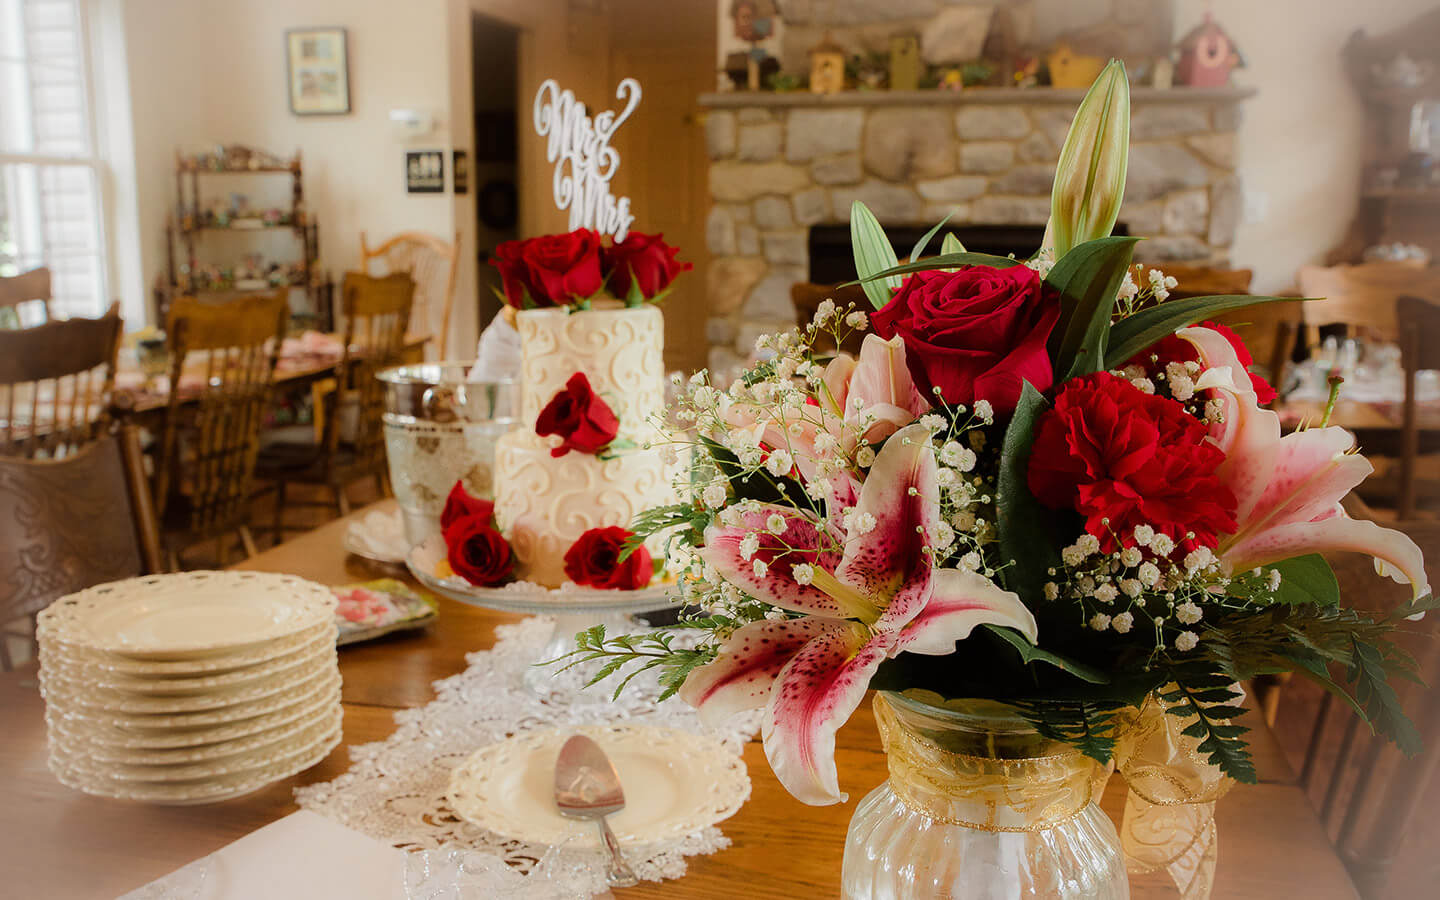 Beautiful flowers and wedding cake